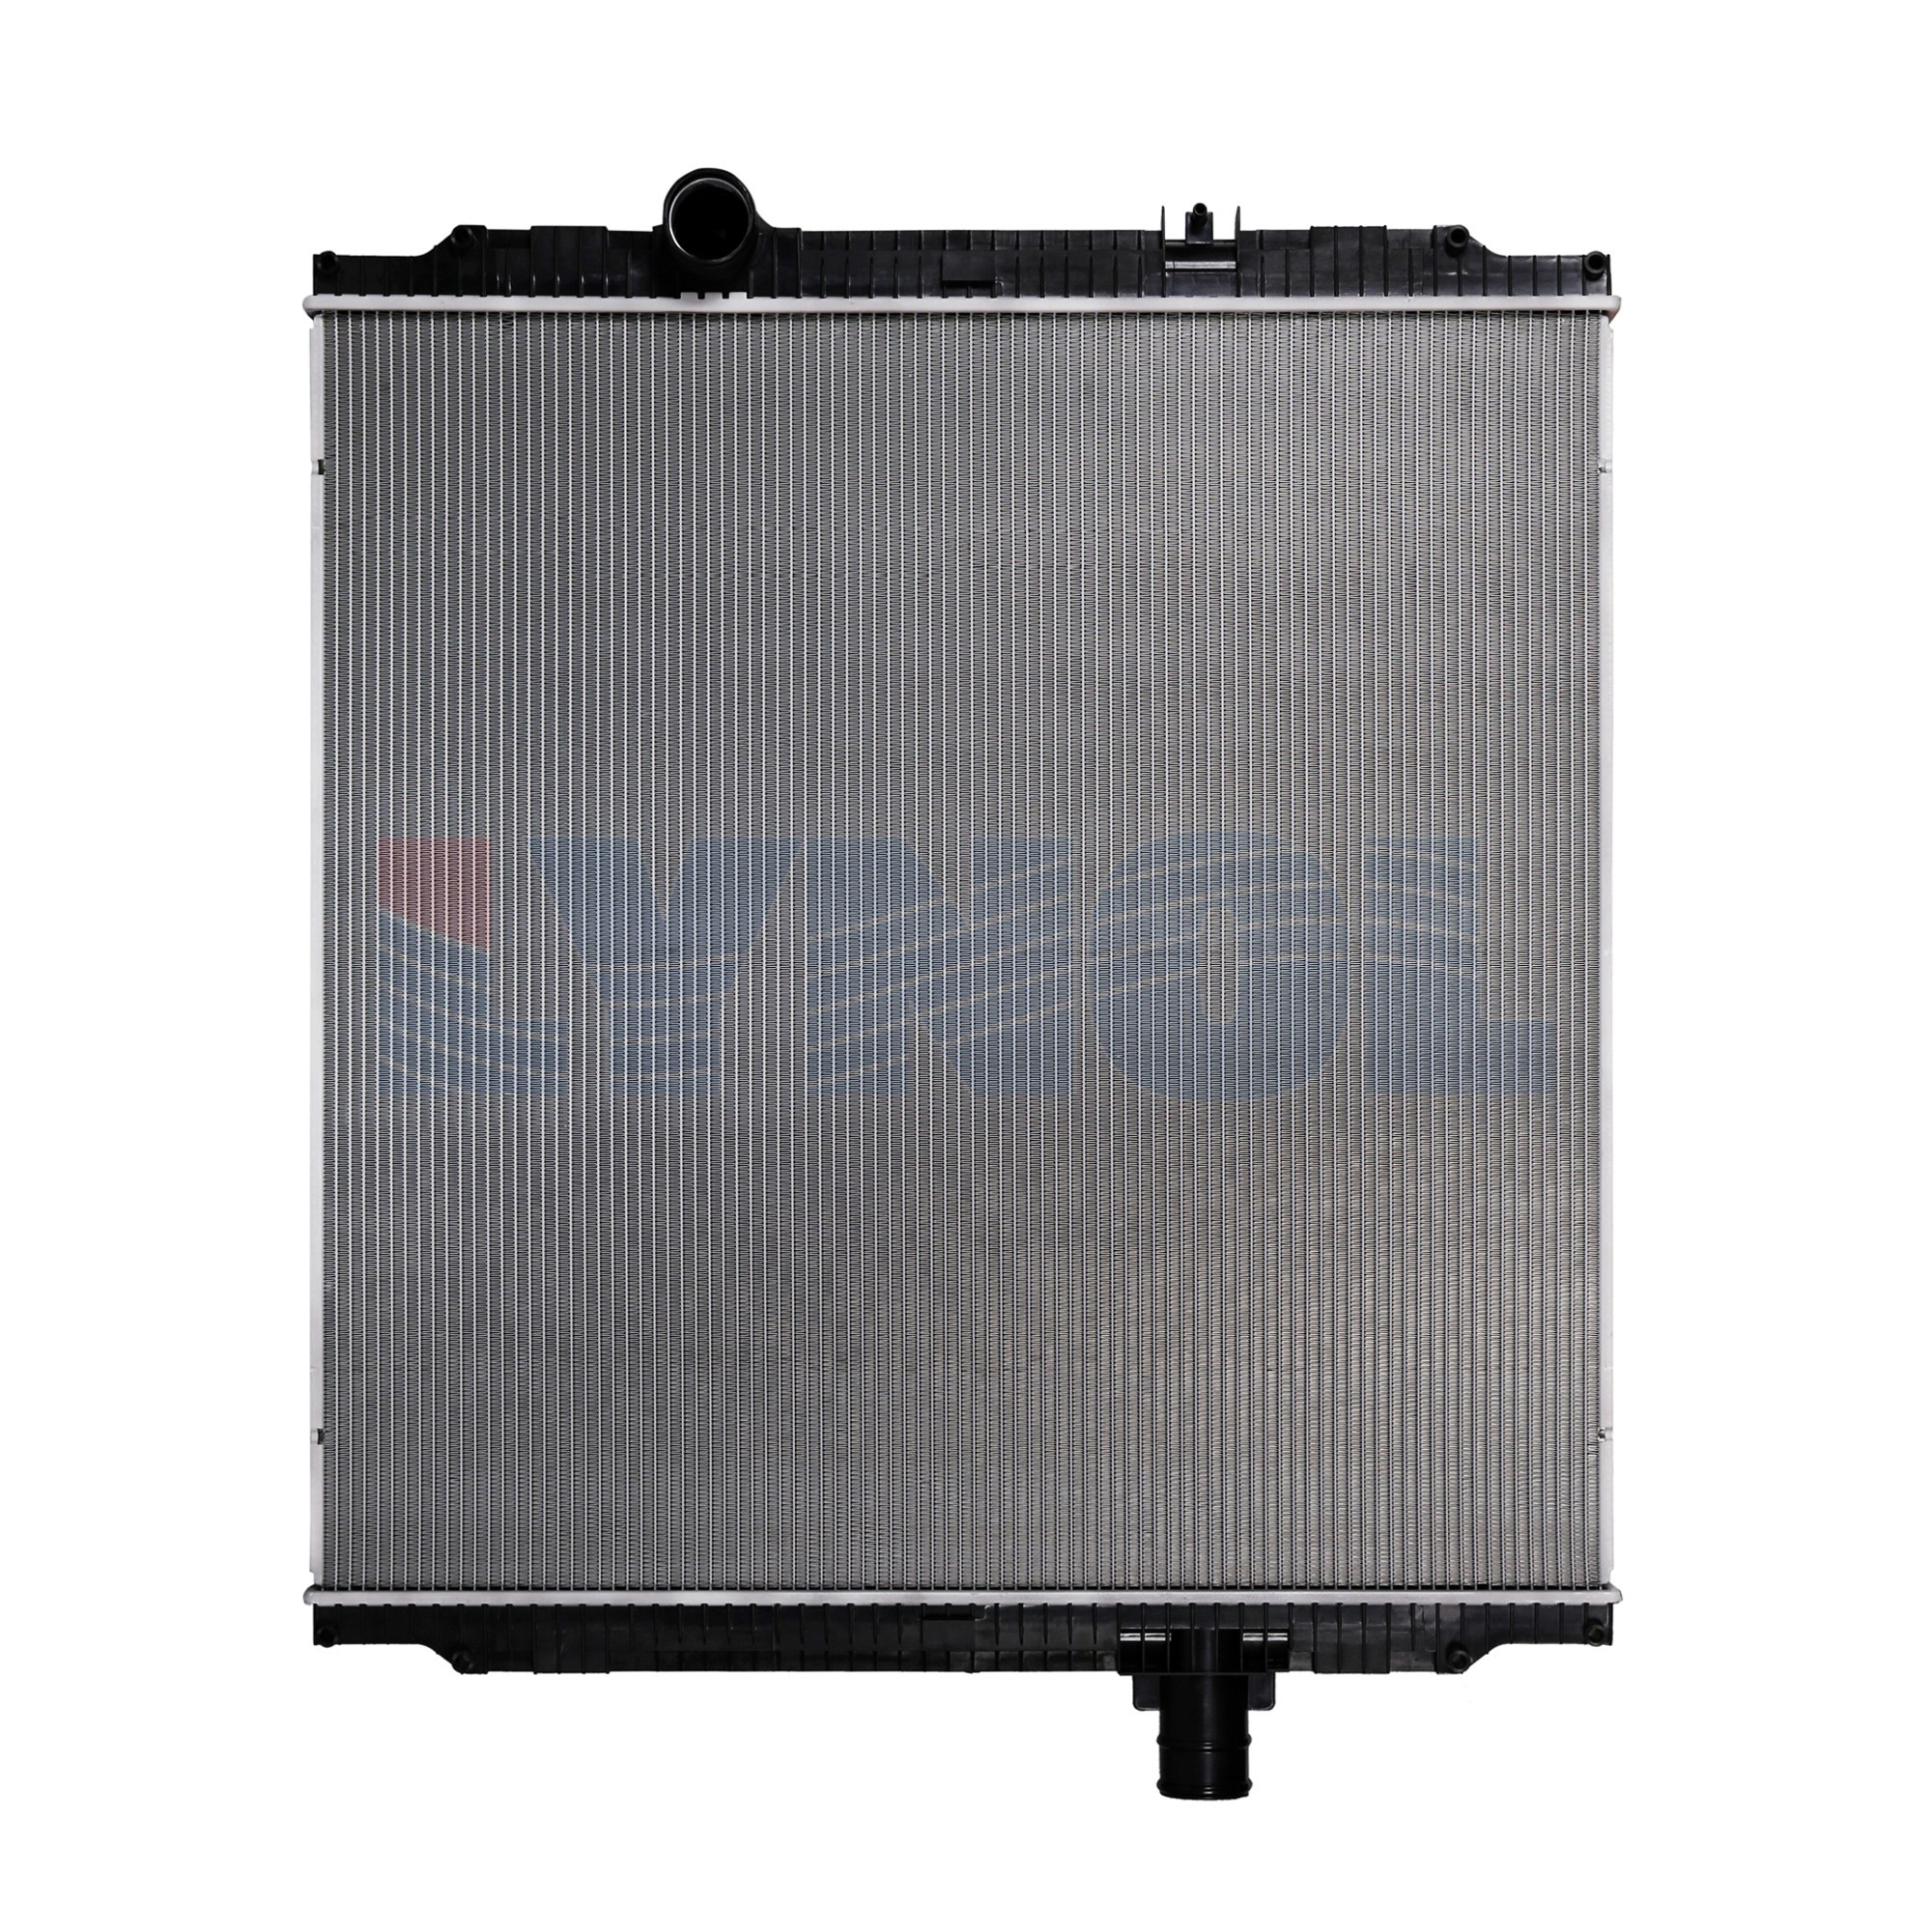 2201-001 - Peterbilt / Kenworth Radiator